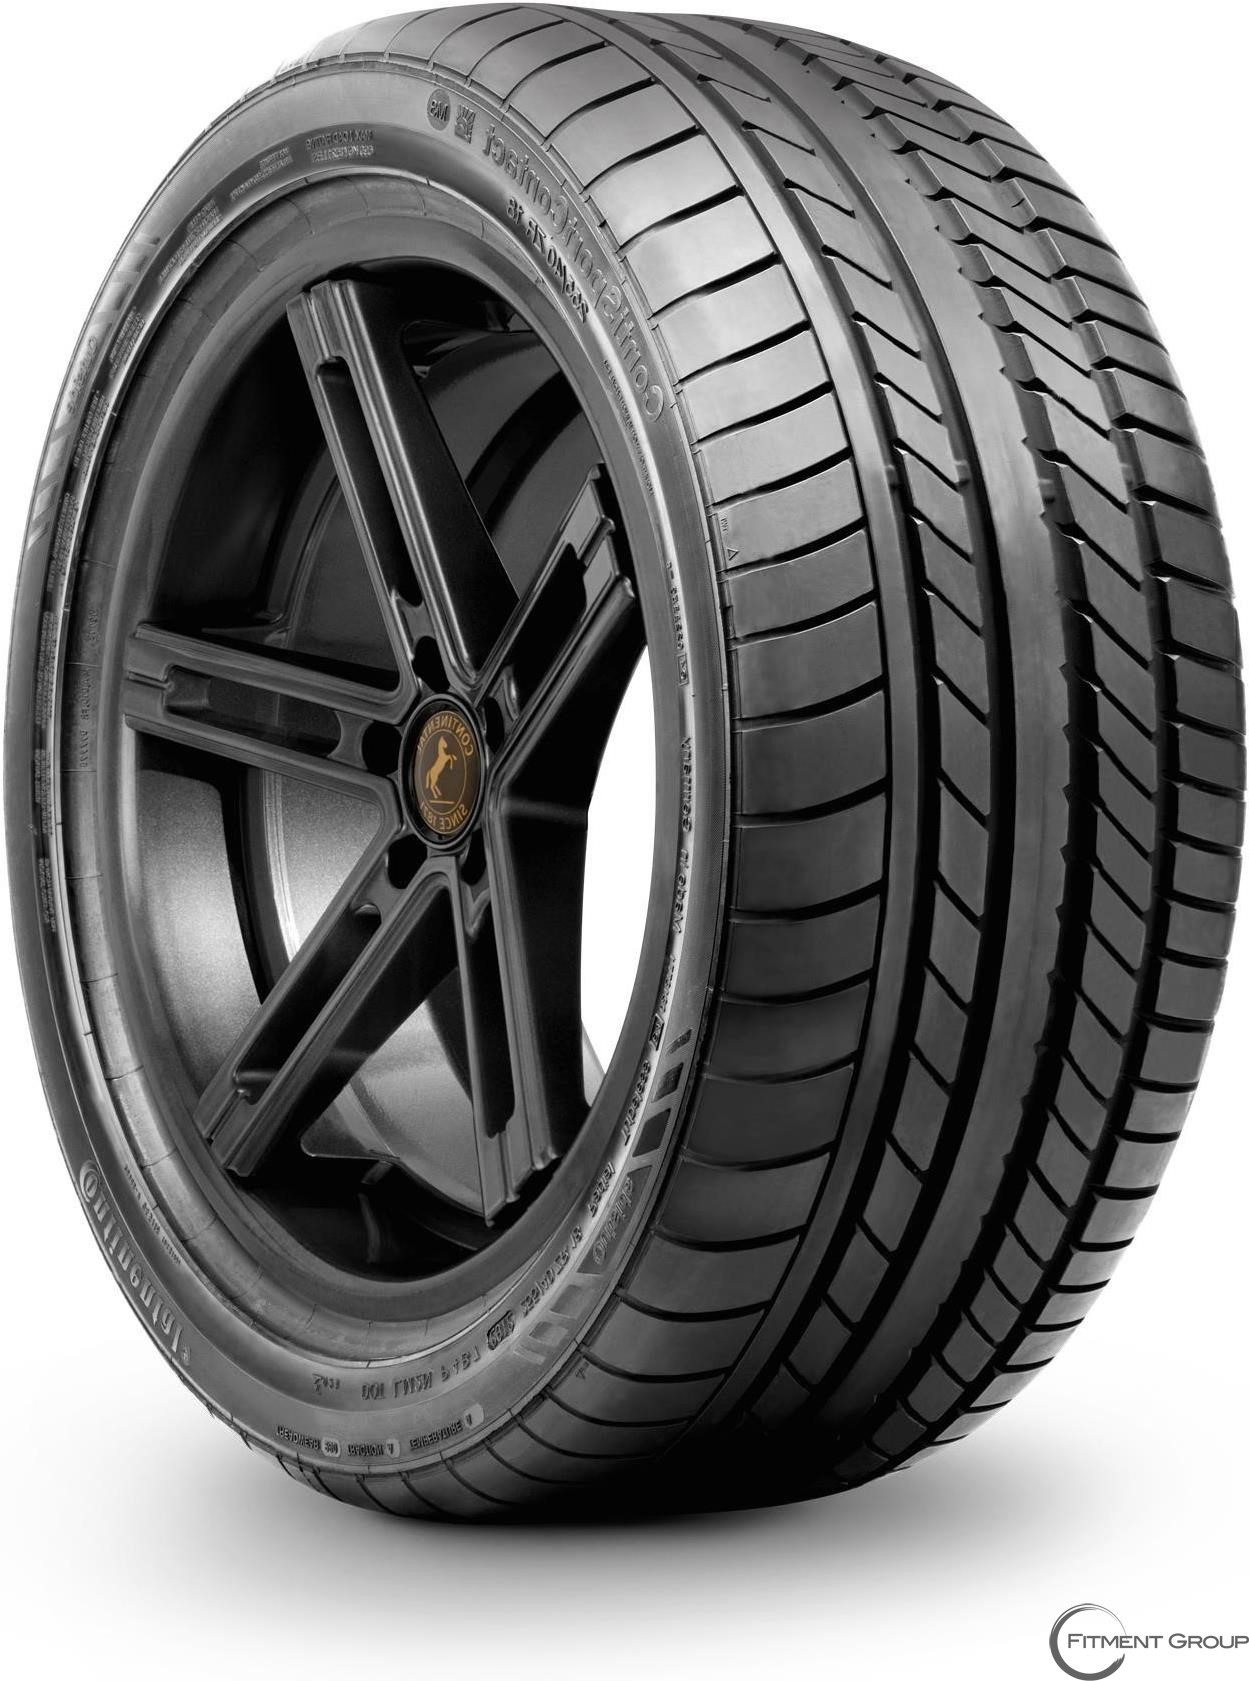 RF 235/50R18 SPORTCONTACT 5 97V BSW CNT